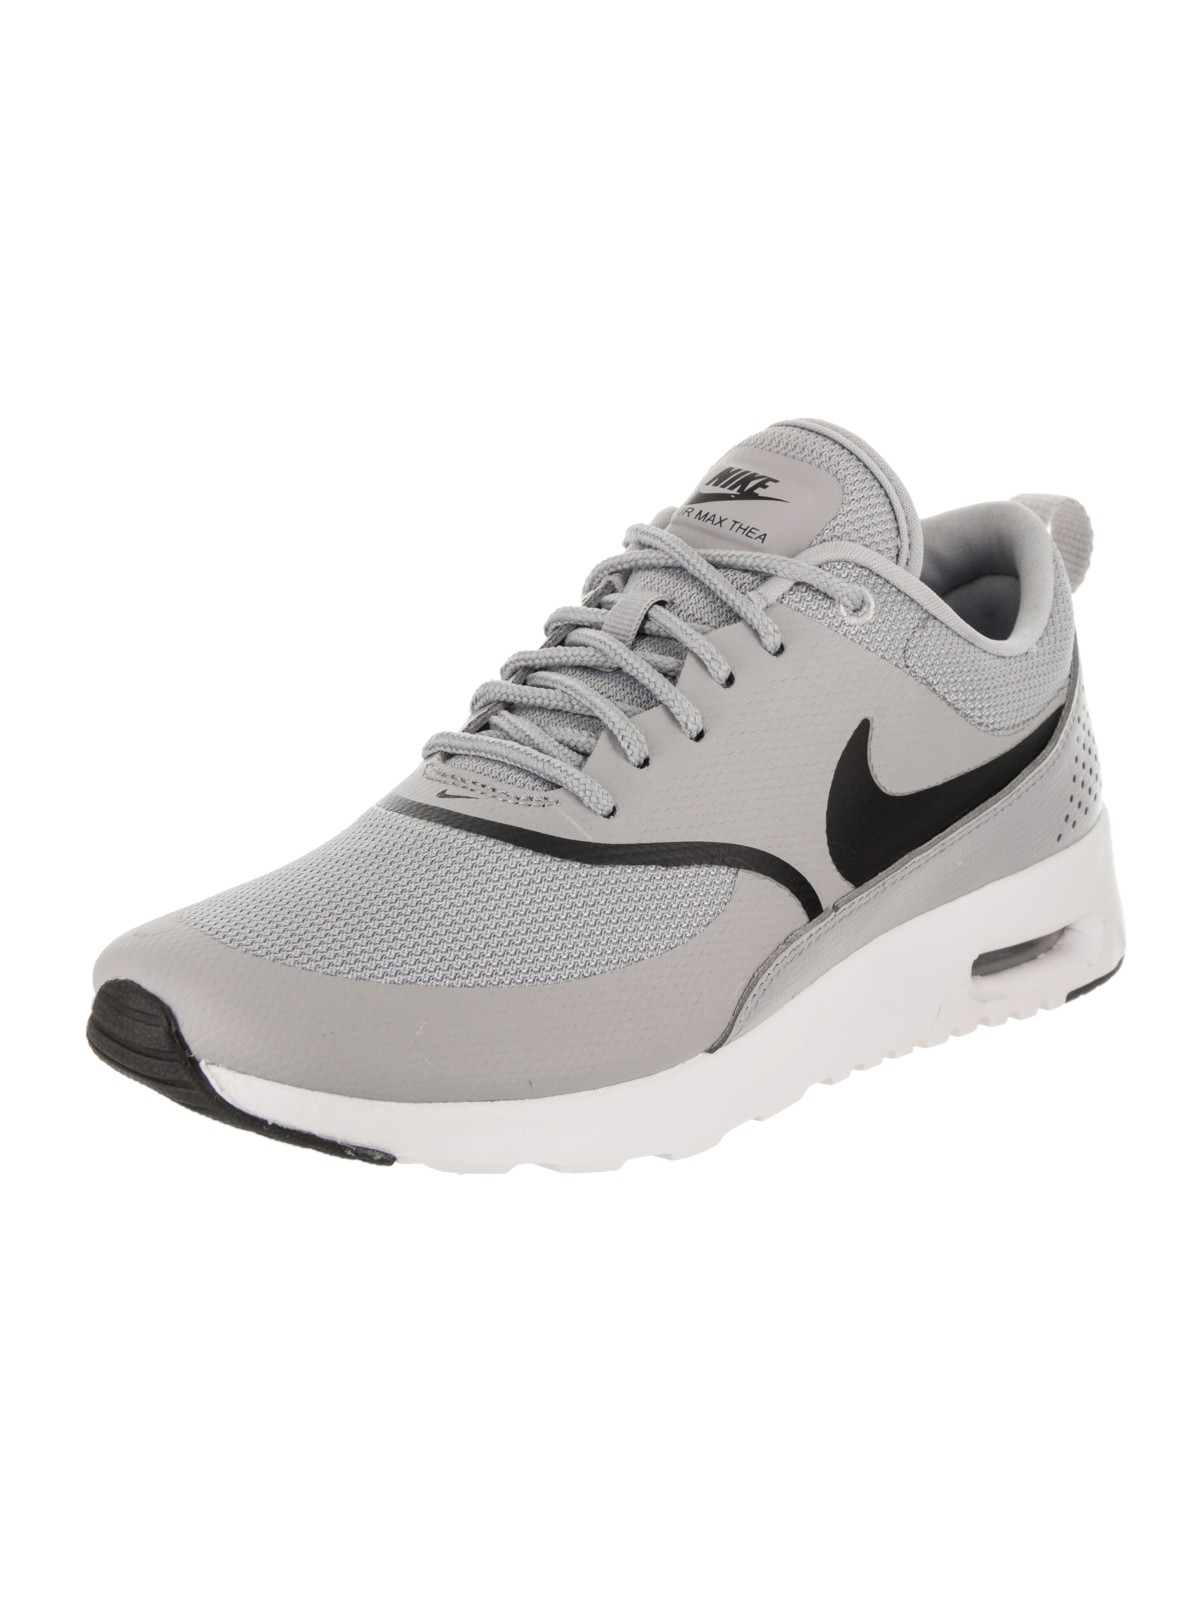 Nike Women s Air Max Thea Running Shoe 30f83262b